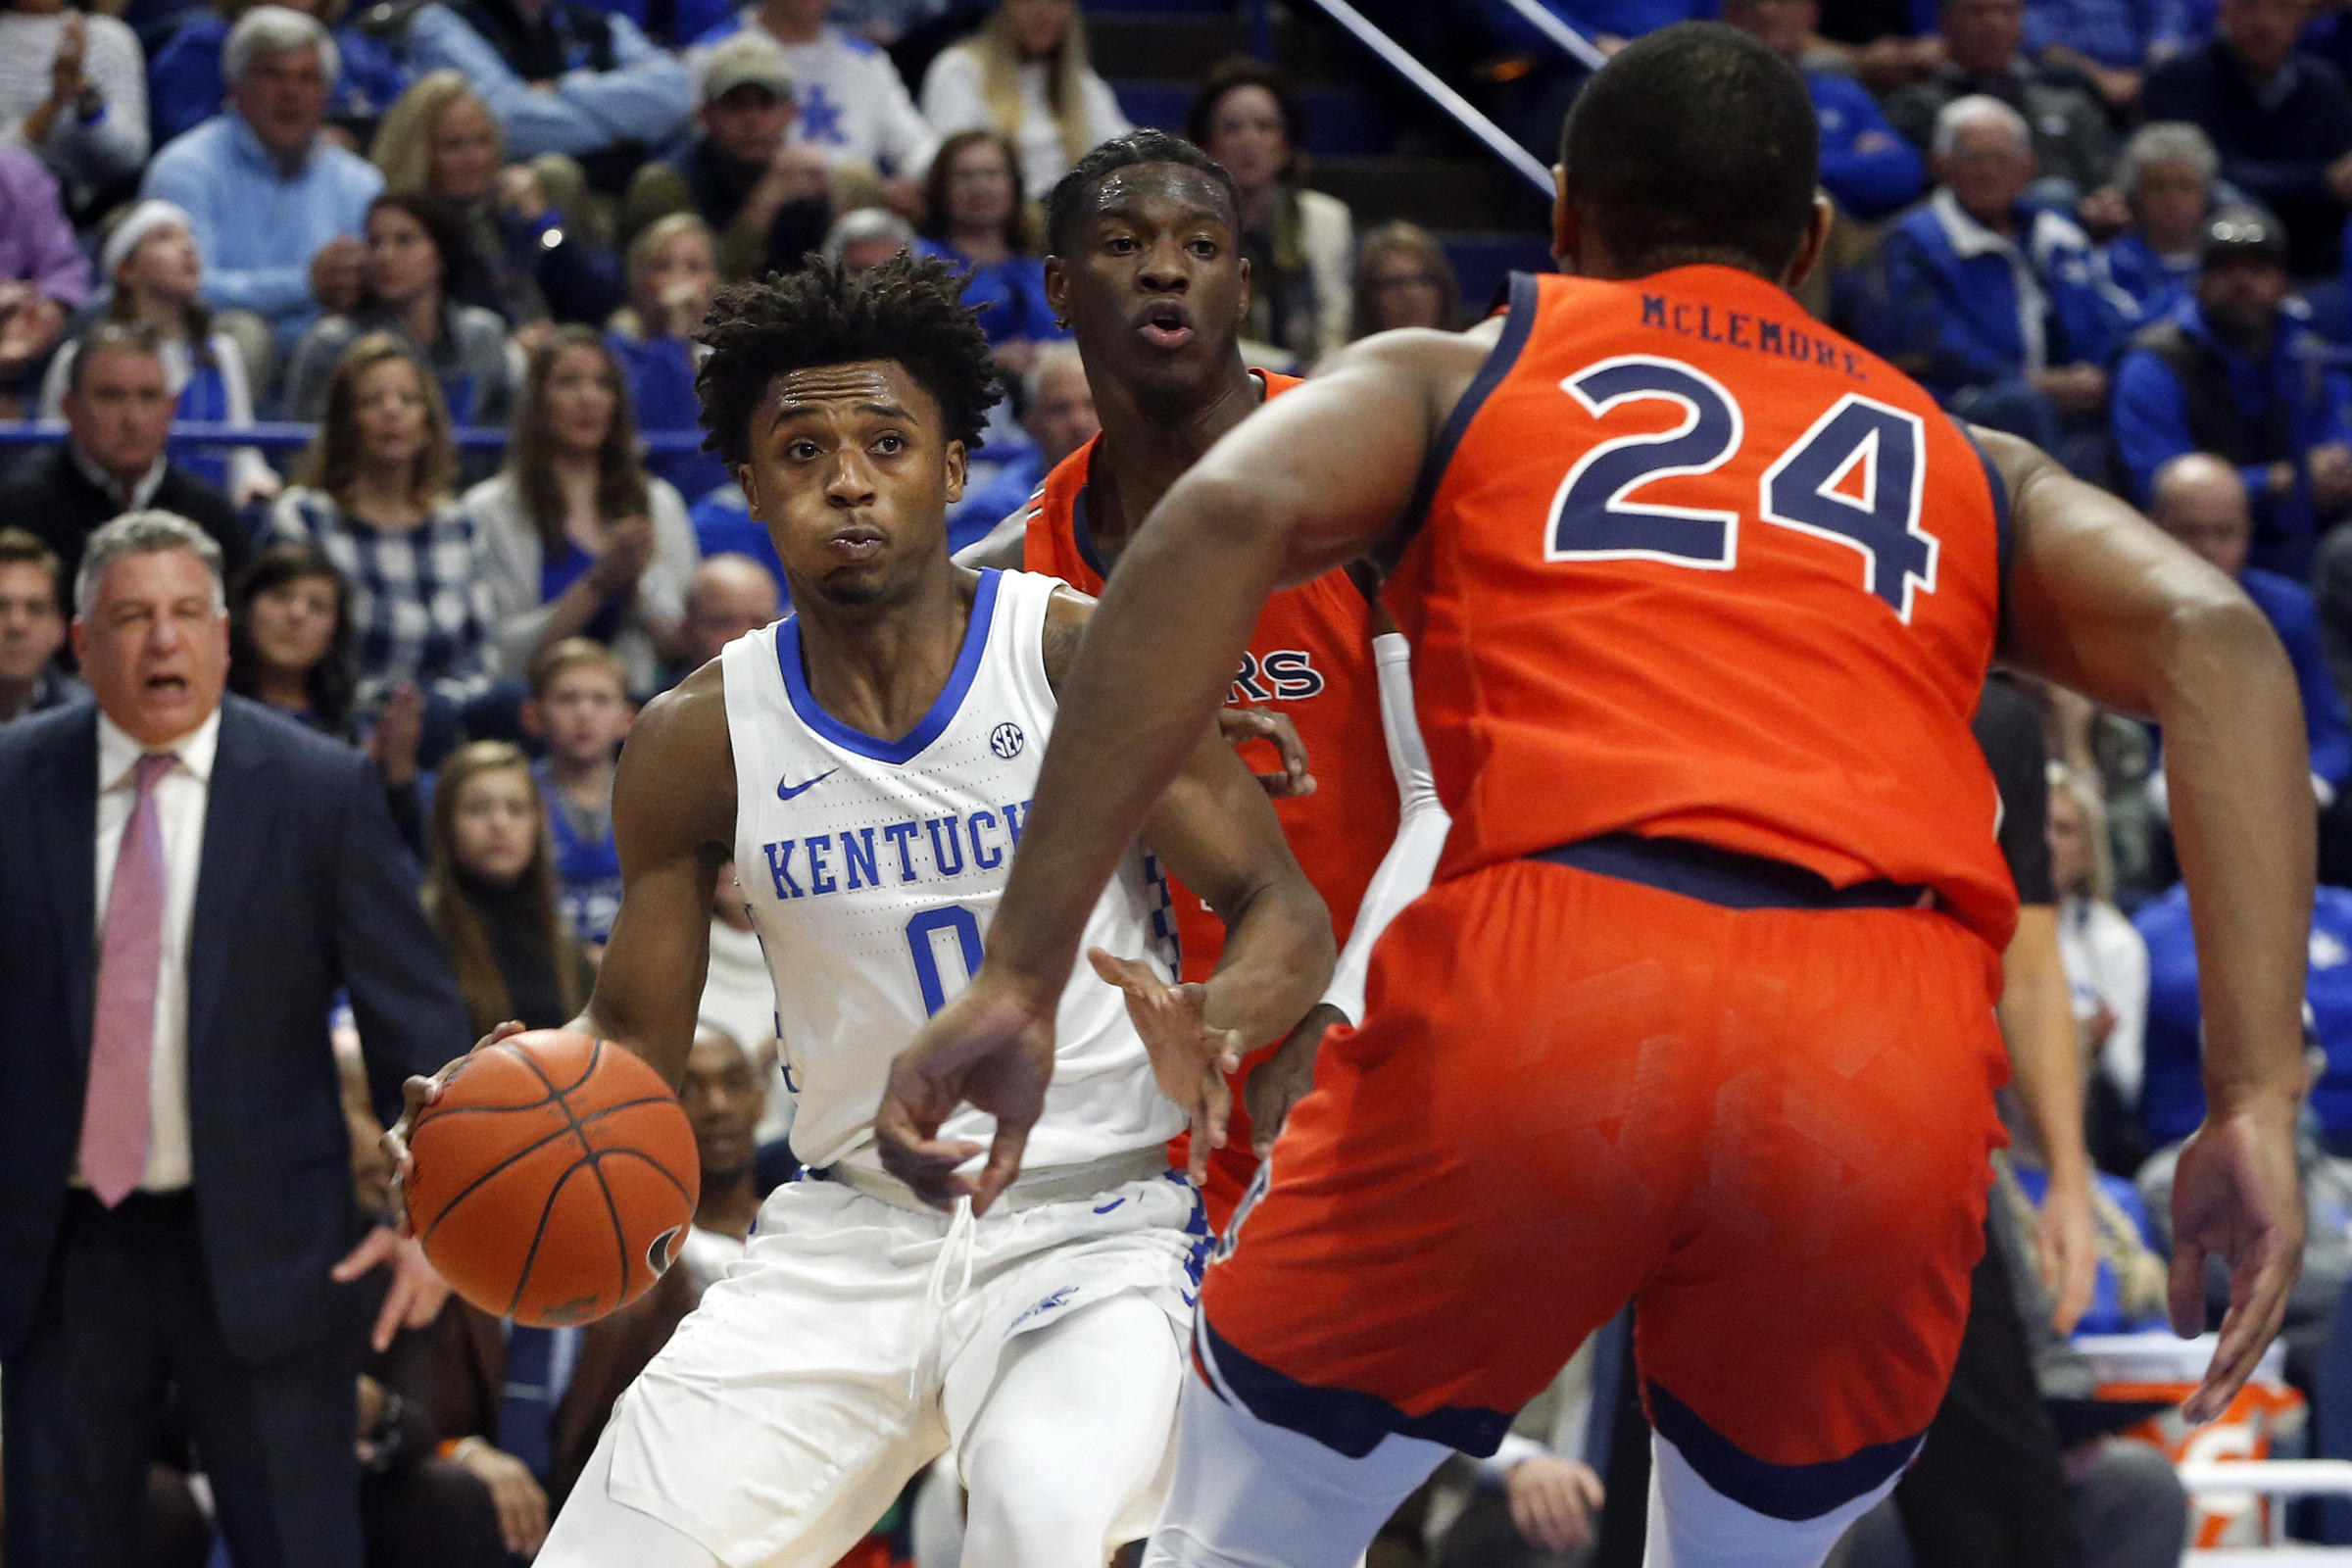 Kentucky's Maxey becomes second Wildcat to enter National Basketball Association draft